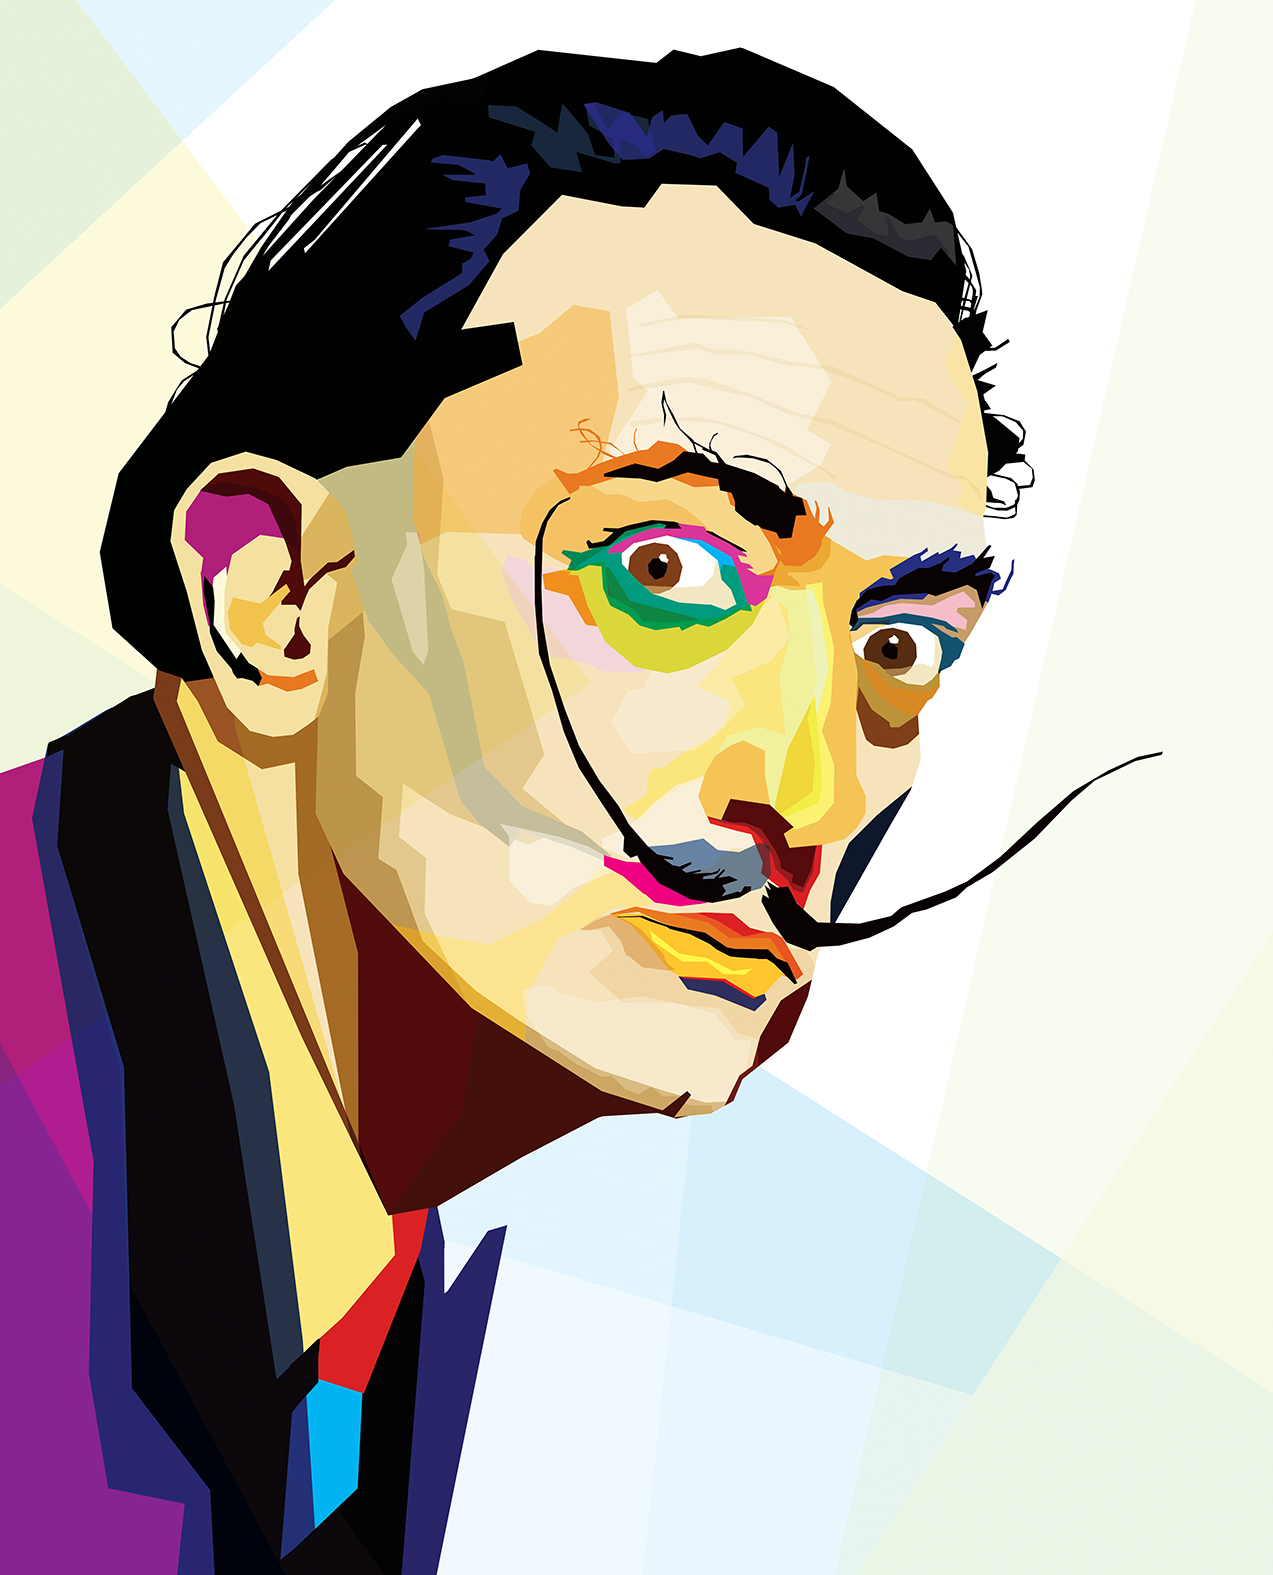 Salvador Dalí by Gilberto Mevi